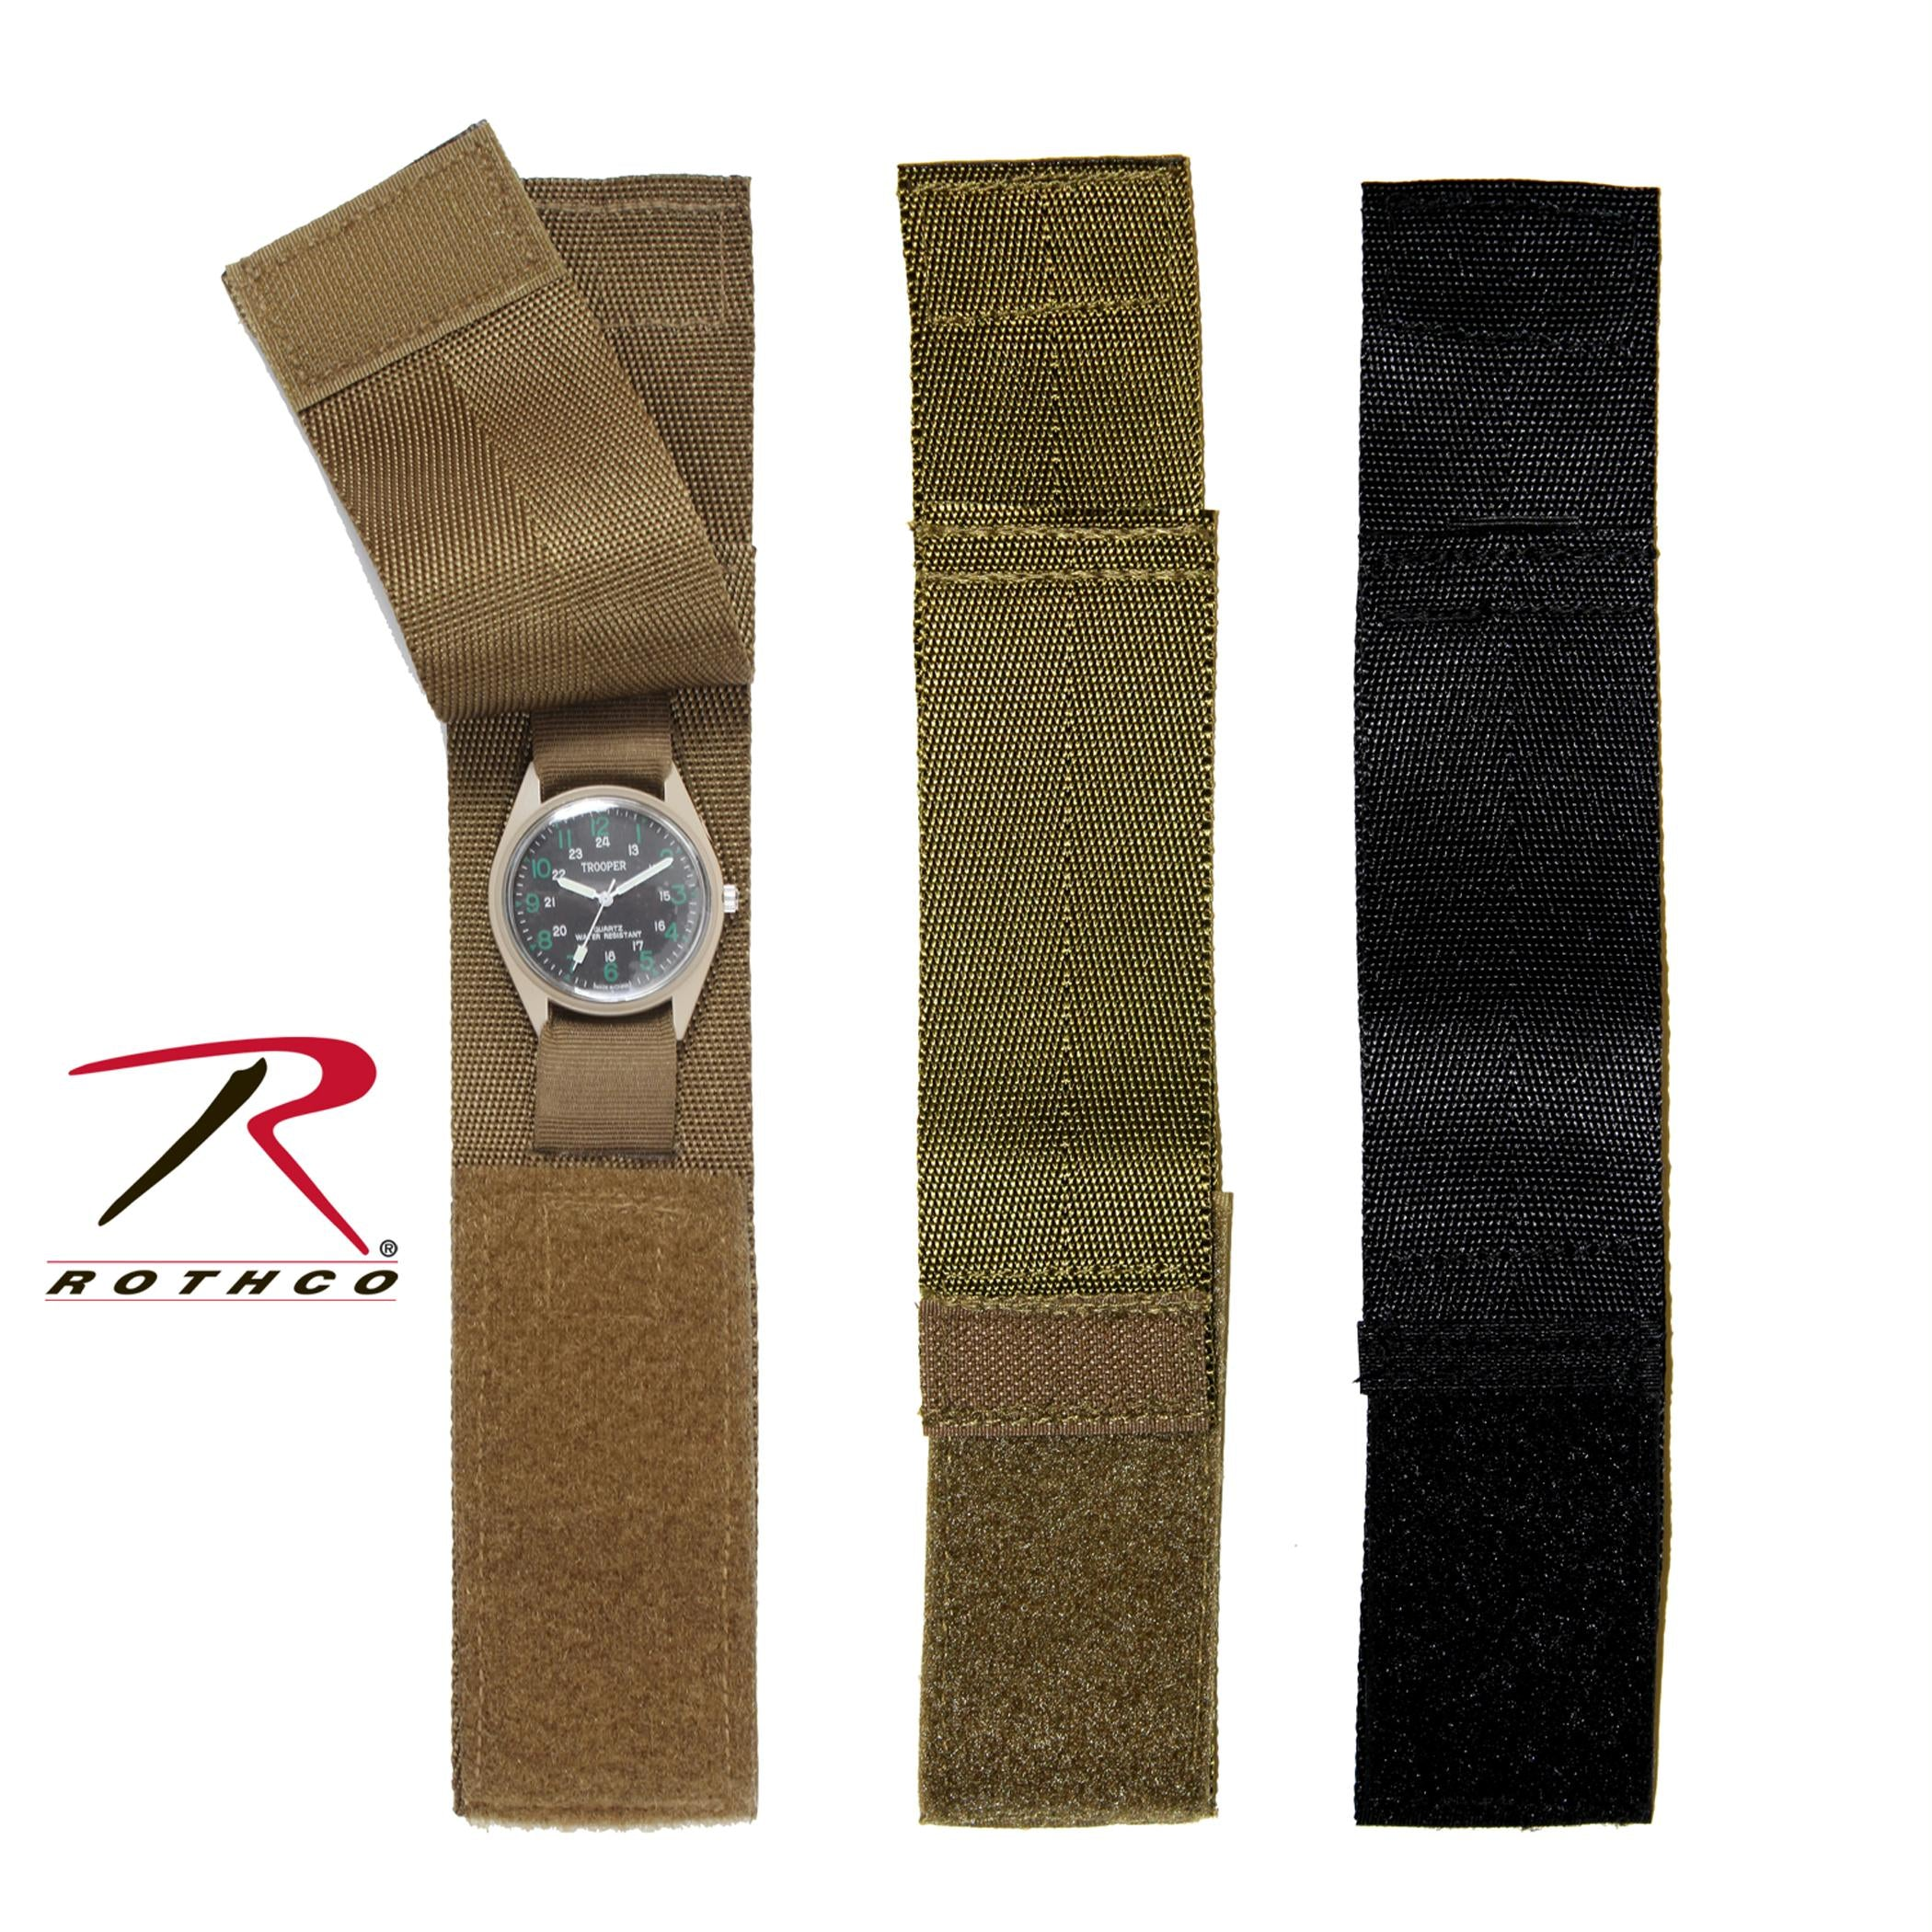 Rothco Commando Watchband - Olive Drab